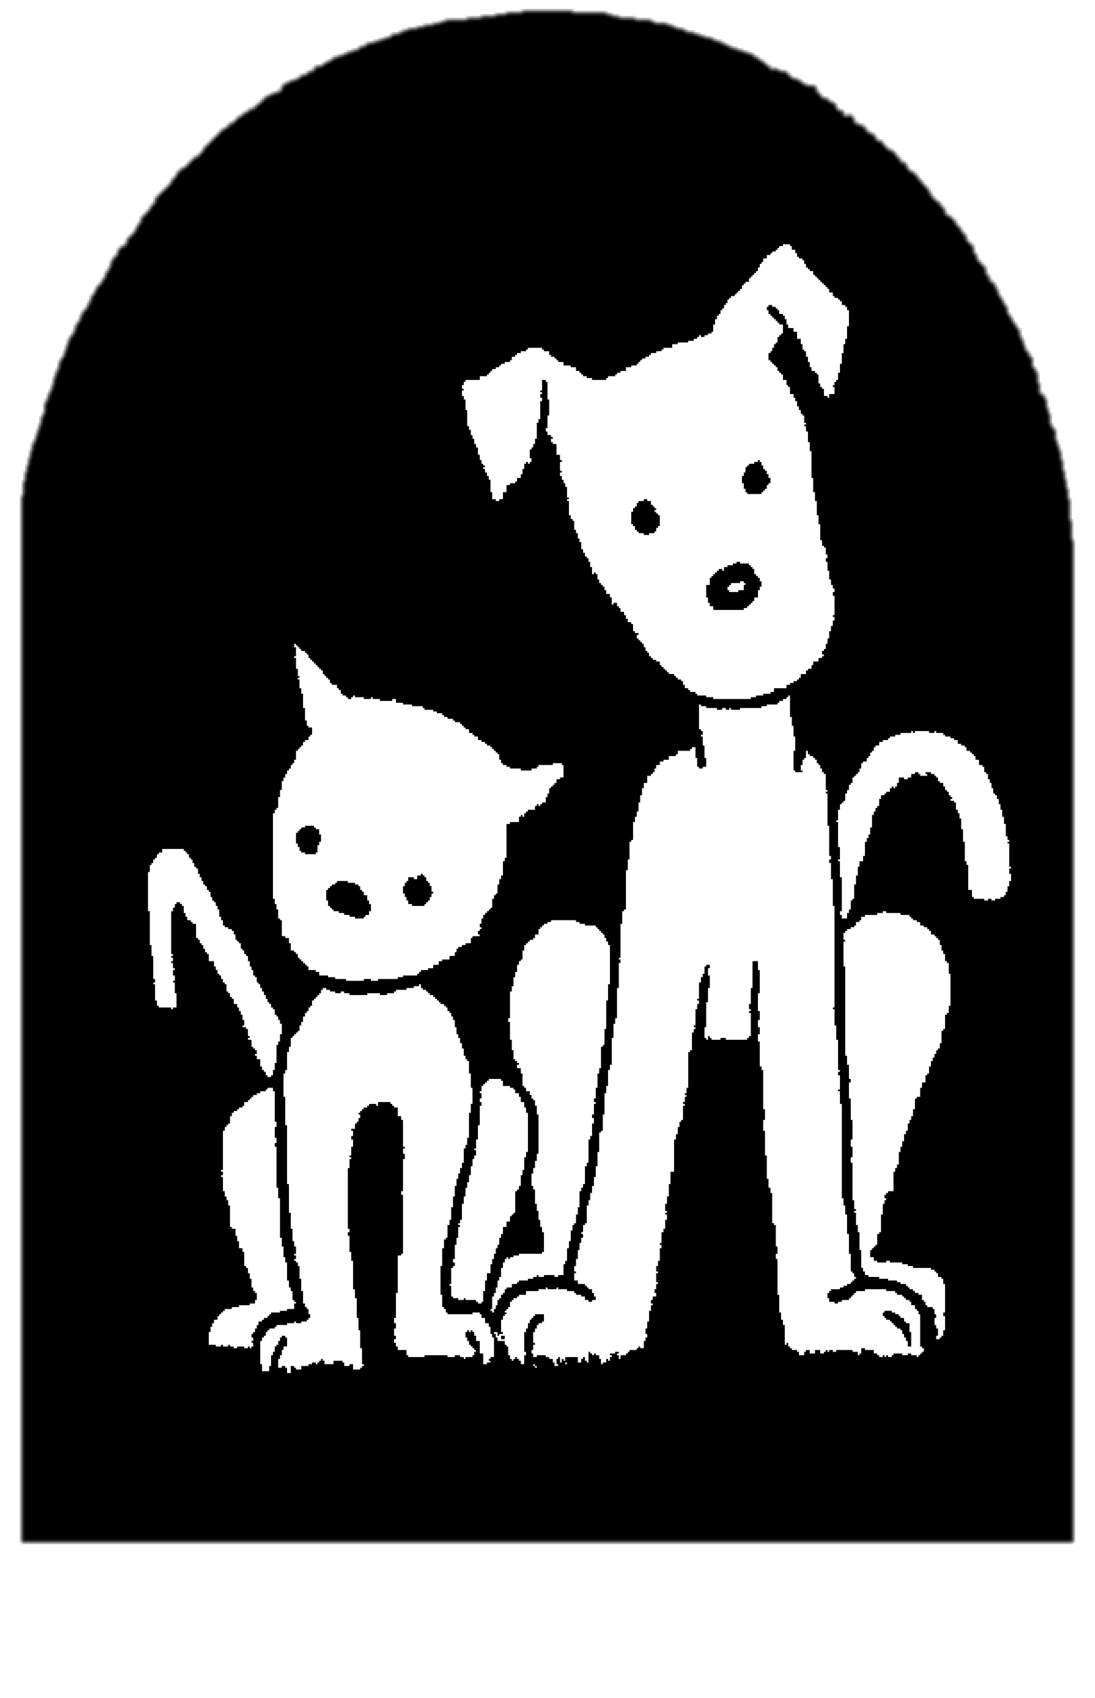 Donation clipart animal shelter. Adoption gallery humane society